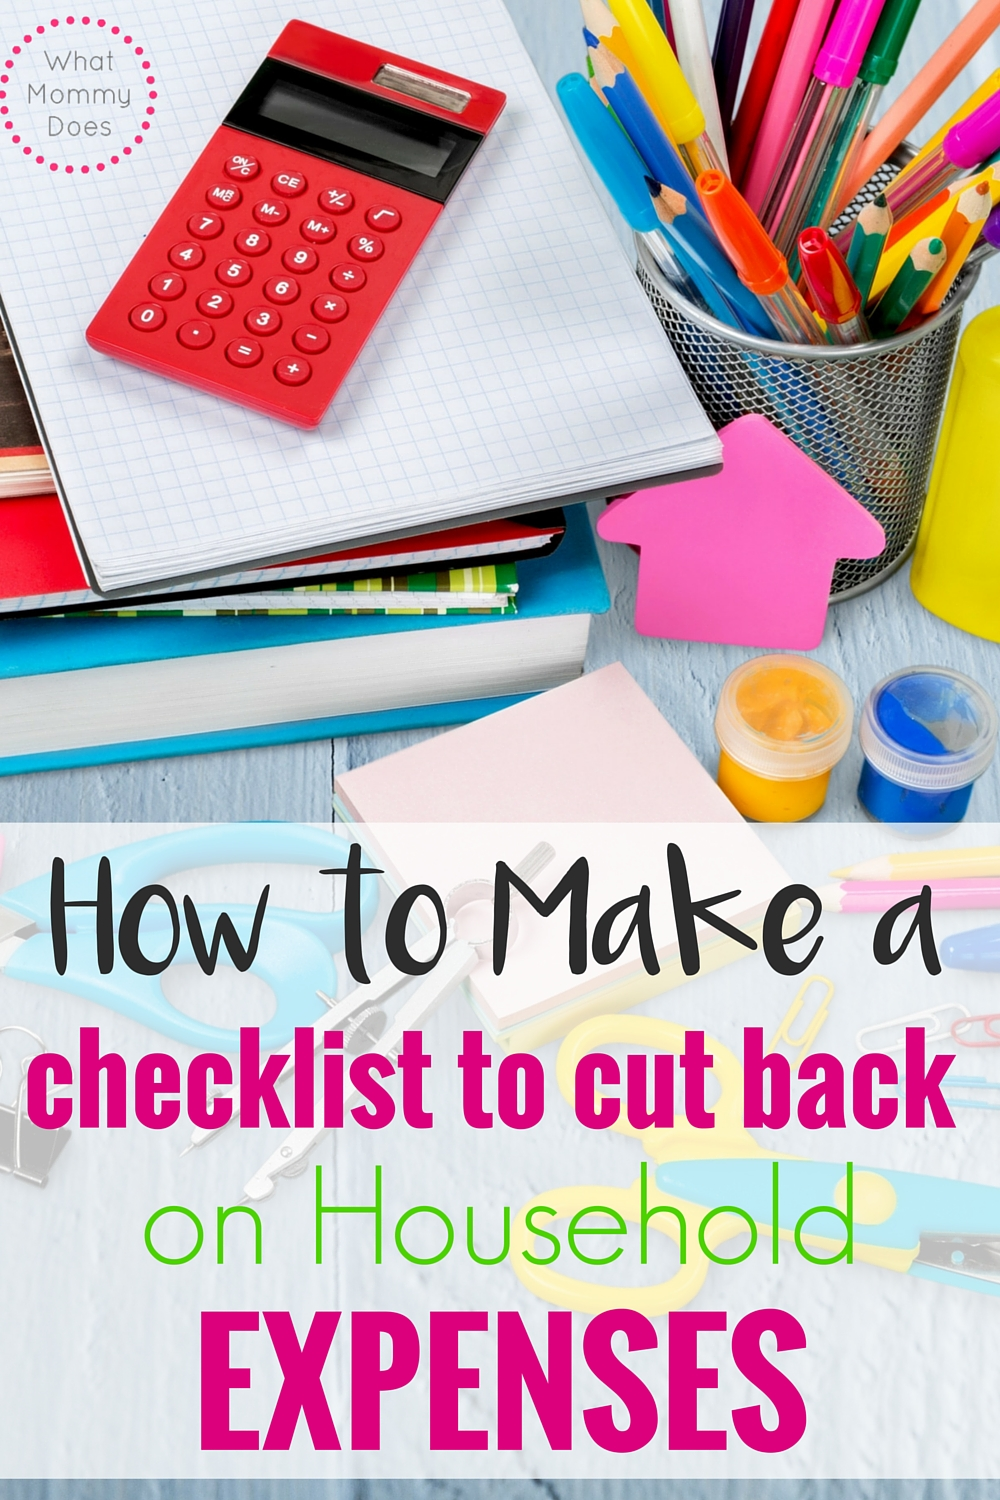 Household Expenses List - Create your own expenses checklist to save money and cut back on spending!